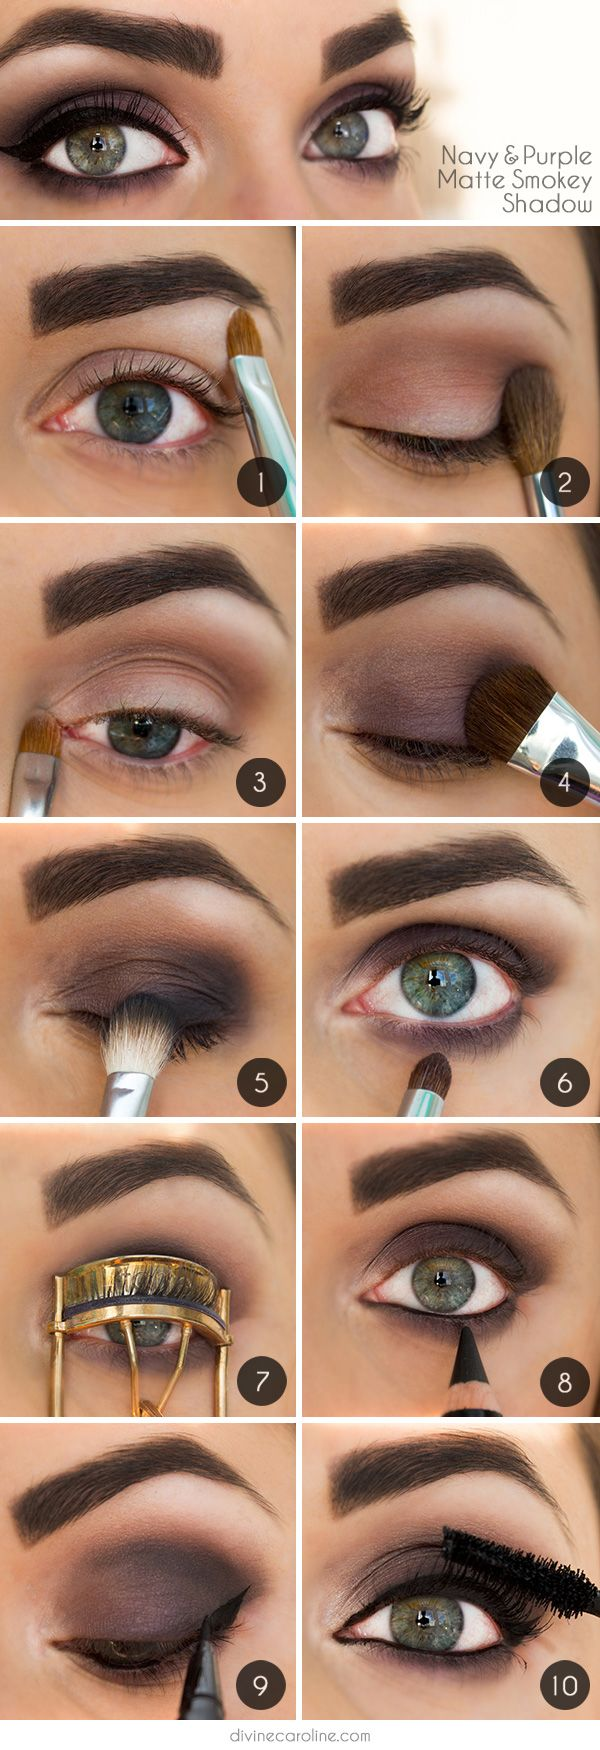 Eye Makeup Must-Try: Navy & Purple Matte Smoky Shadow | Ivy Boyd of Wake Up For Makeup for Divine Caroline #nyxcosmetics